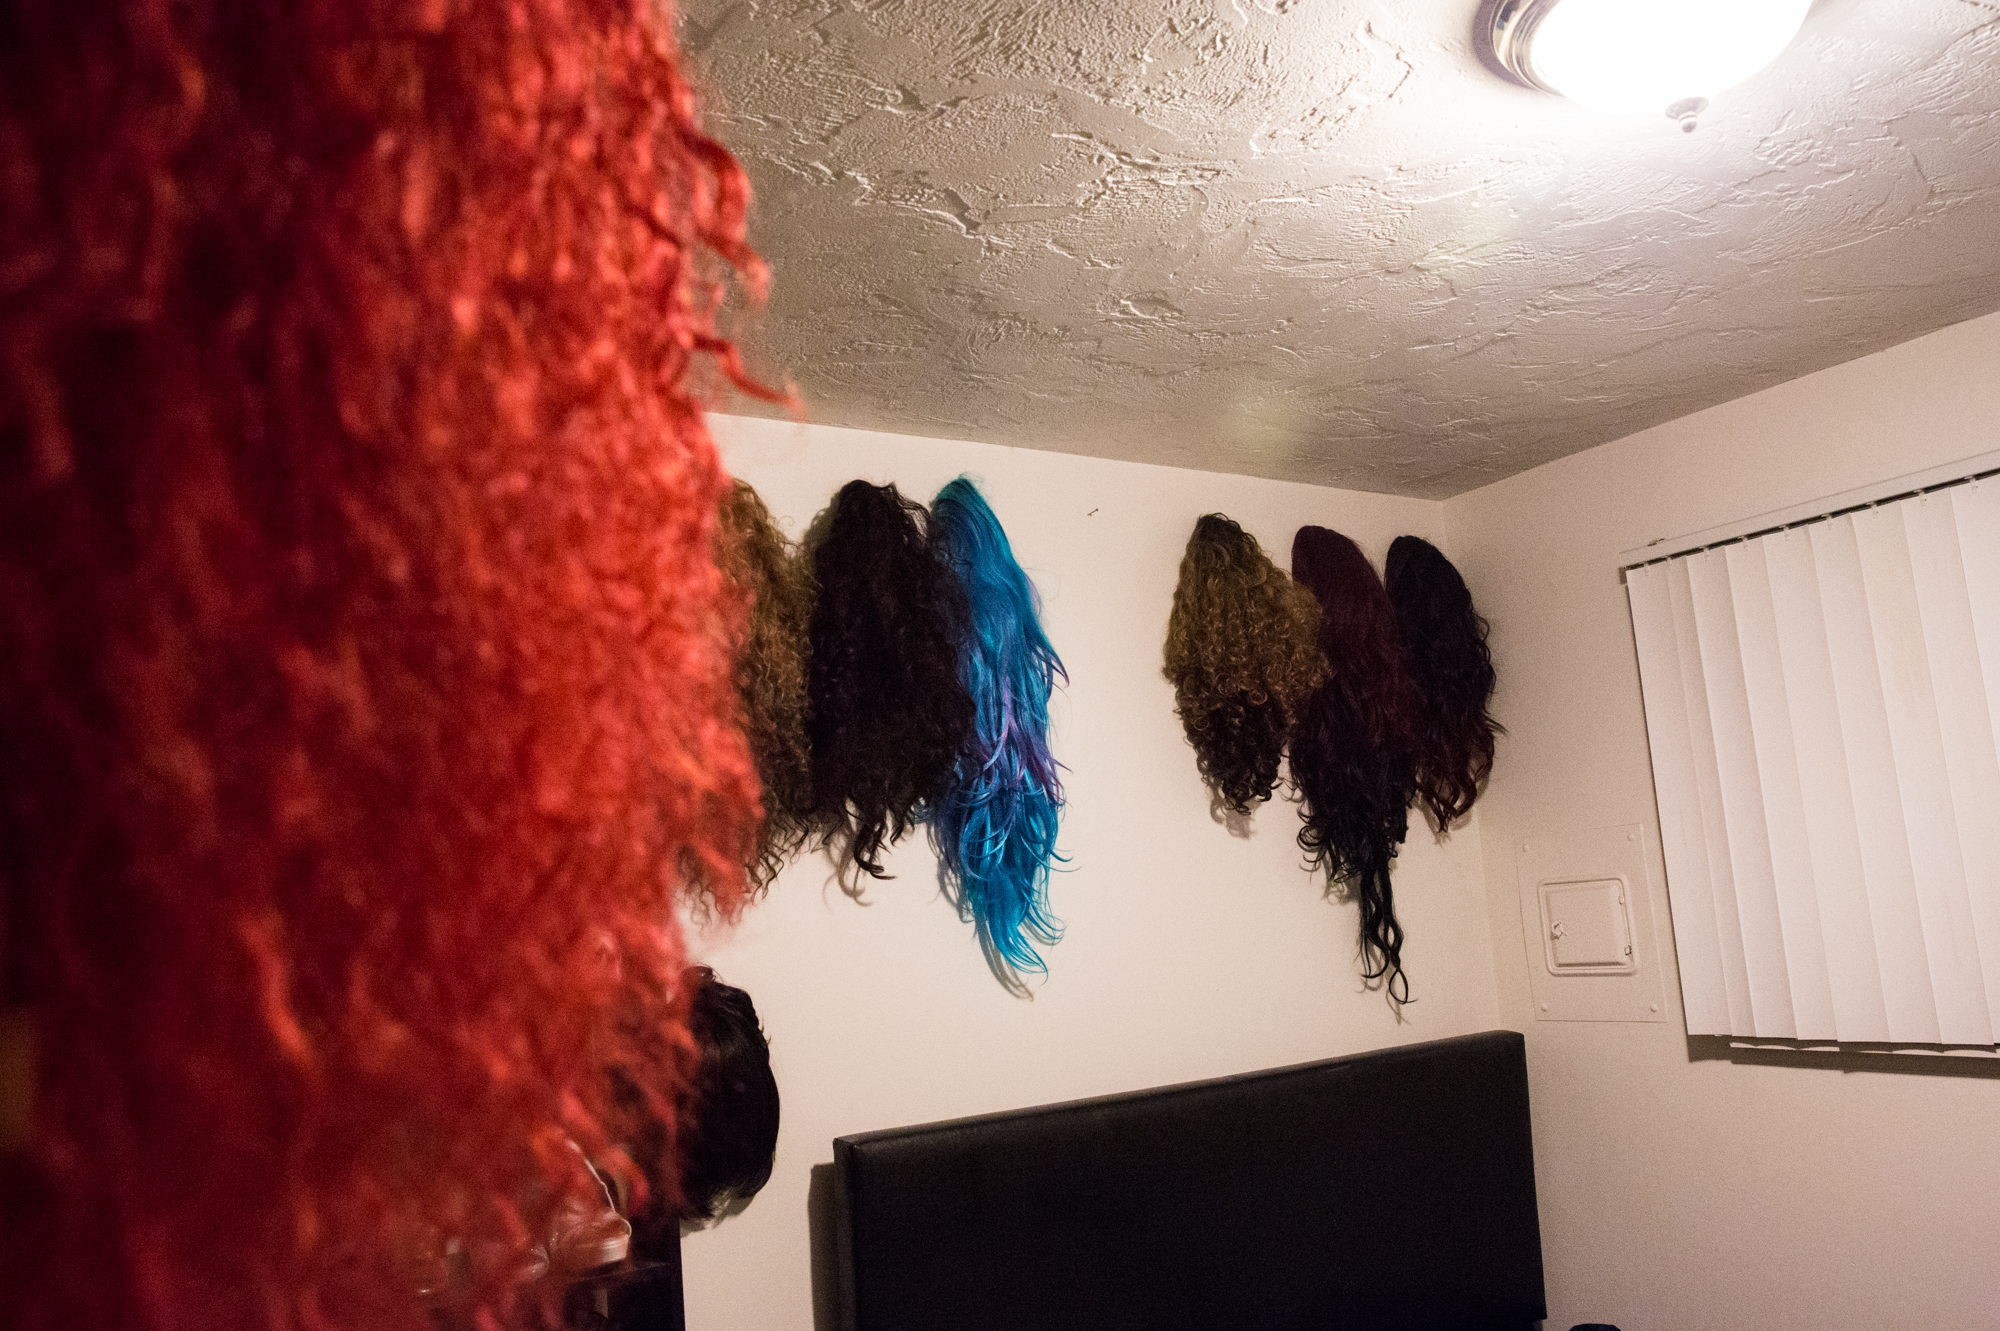 Nicky Serene's many wigs are displayed on the walls of Mark Harbaugh's drag room. Mark's choice of wig for the Glamazons show depends on the song choice, outfit and mood of the evening.